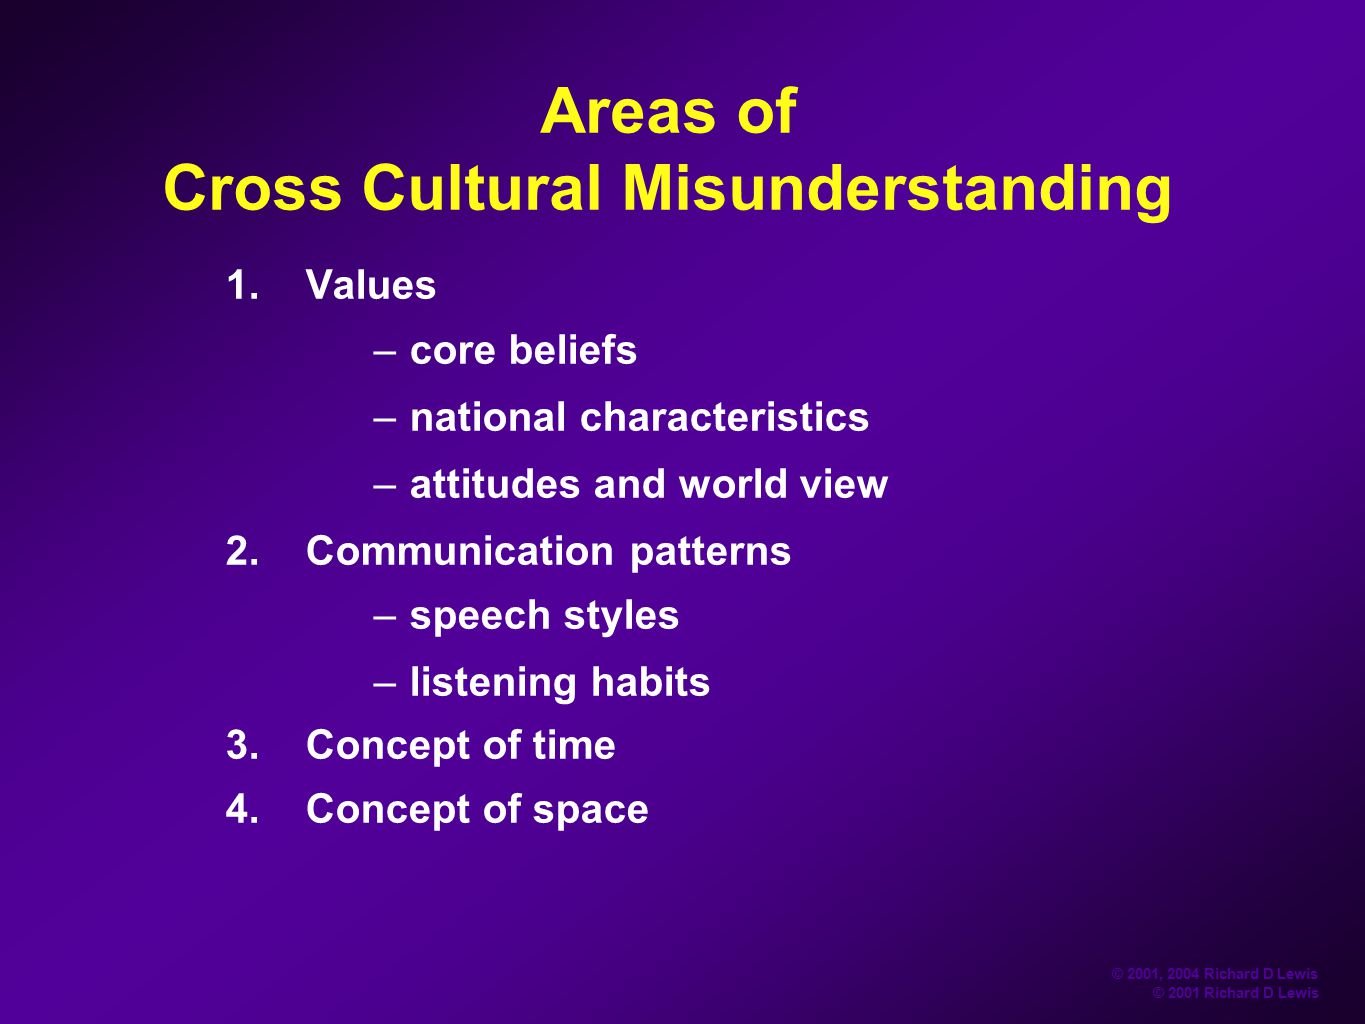 Areas of Cross Cultural Misunderstanding